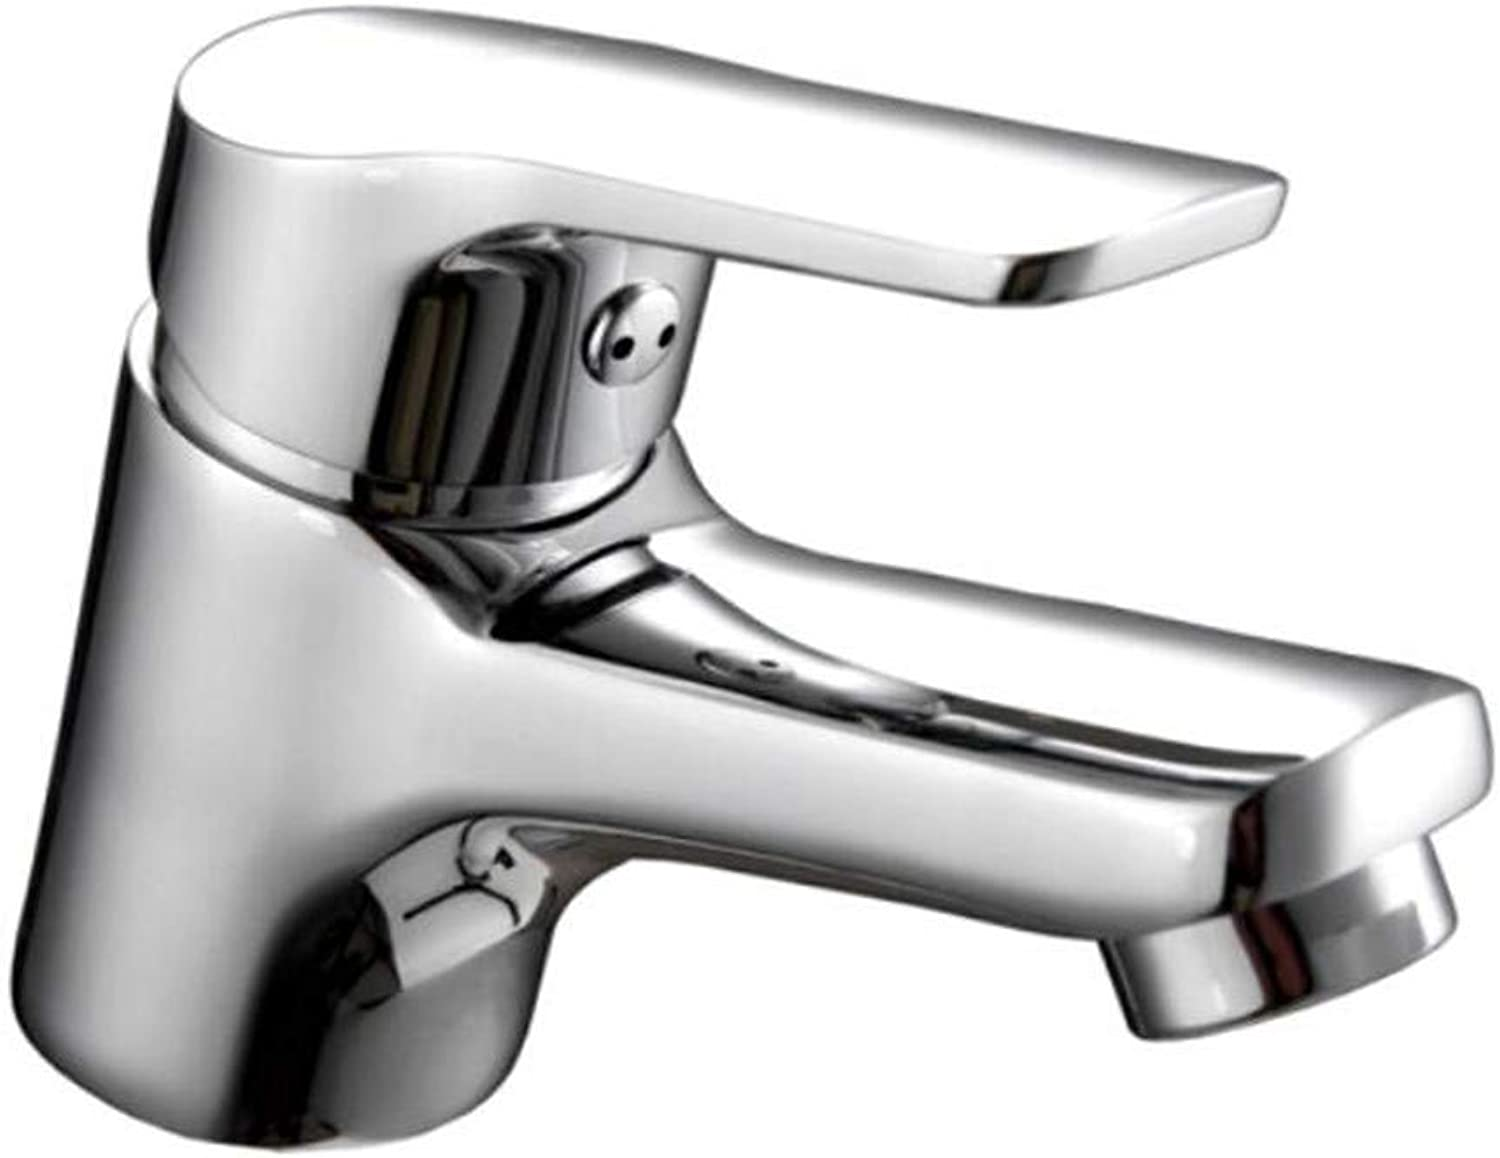 Taps Mixer?Swivel?Faucet Sink Basin Faucet Hot and Cold Bathroom Single Cold Wash Basin Wash Basin Faucet Hot and Cold Basin Faucet